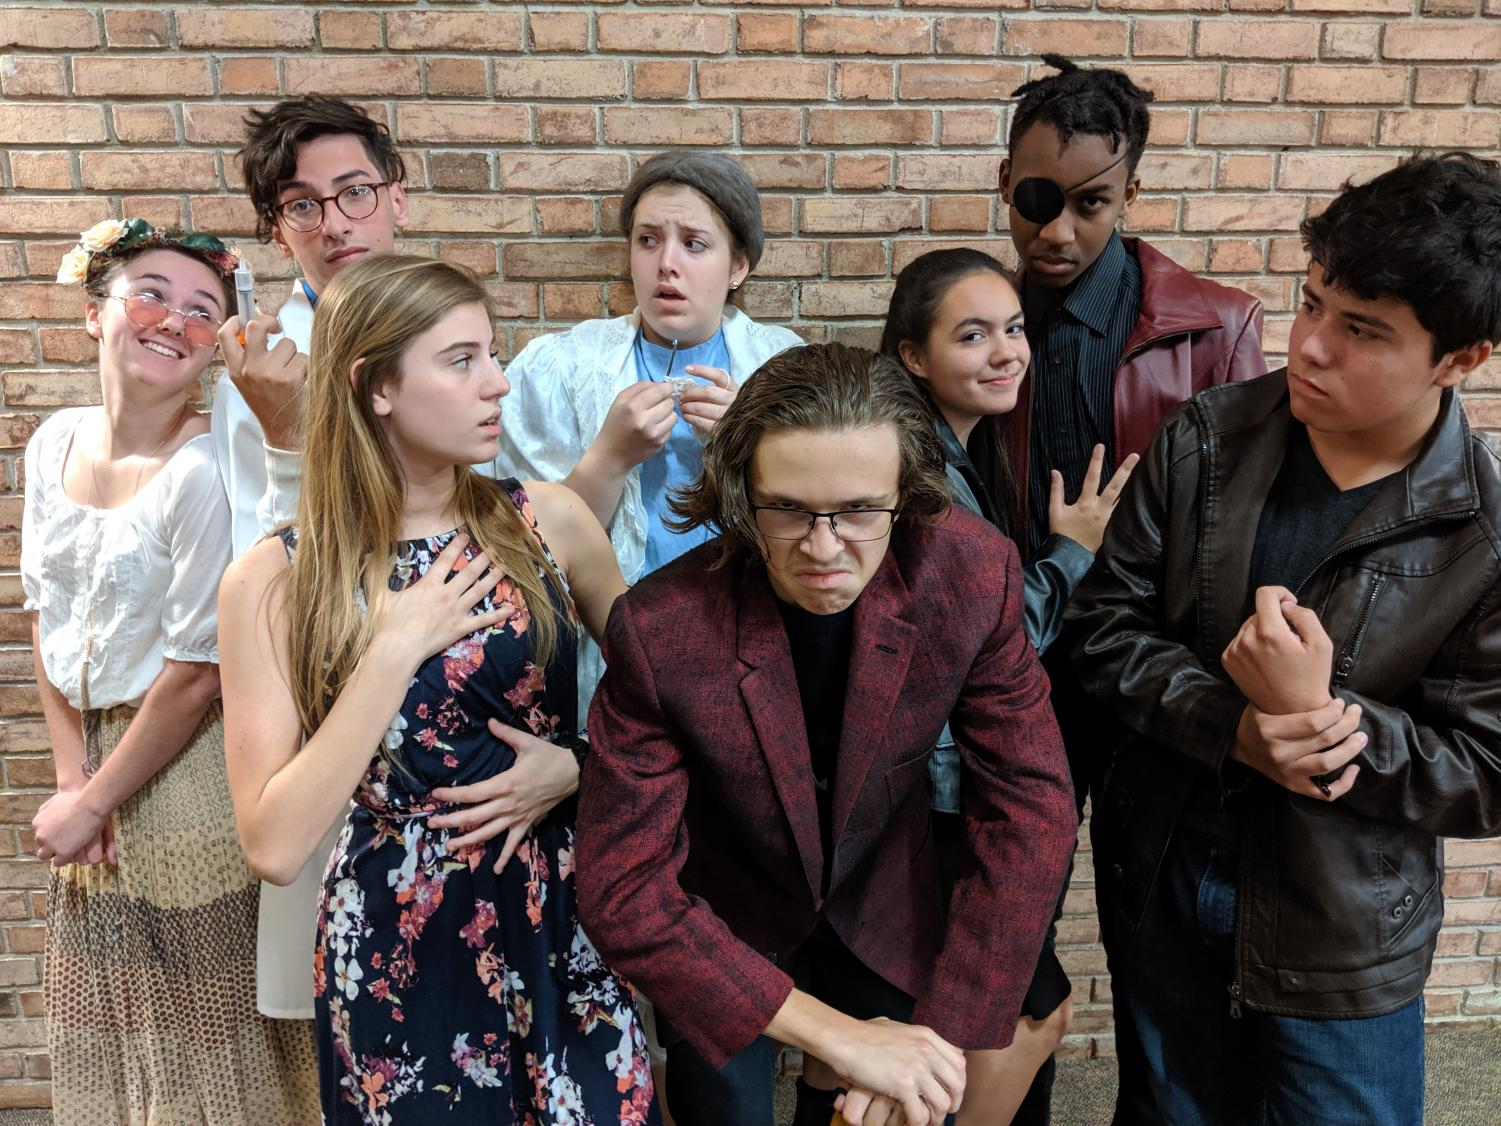 The Cast of the Fall Play: Playing the soap opera characters, as well as their own characters are: Sophomore Wesley Reyes as Jake Strong/Morris Nyborg;  Senior Iyan Kariuki as Sebastian Strong/Bill Wiley;  Junior Henry Goodnick as Valencio Di Carpathio/John Burke;  Senior Elijah Camacho as Doctor William Bradley/Tyler Tripodo;  Junior Emily Gilligan as Mona Jeffries/Cybil Dane;  Senior Vanessa Falzarano as Eileen Silvertedt/Amy White;  Sophomore Julianne Magistrado as Jessica Silverstedt/Danielle Farris; Junior Ellie Higgins as Sequoiya/Lily Baumgartner. Playing the roles of the soap opera staff are:  Junior Carlee Fisco as Oli, the director;  Senior Alex Lino as Kaitlin, the stage manager;  Senior Emma Kaiven as Keri, the intern; Junior Dani Gilbert as Brooke, the camerawoman;  Juniors Samantha Lewis and Amy Twohig as Miles/Mary, the producer.